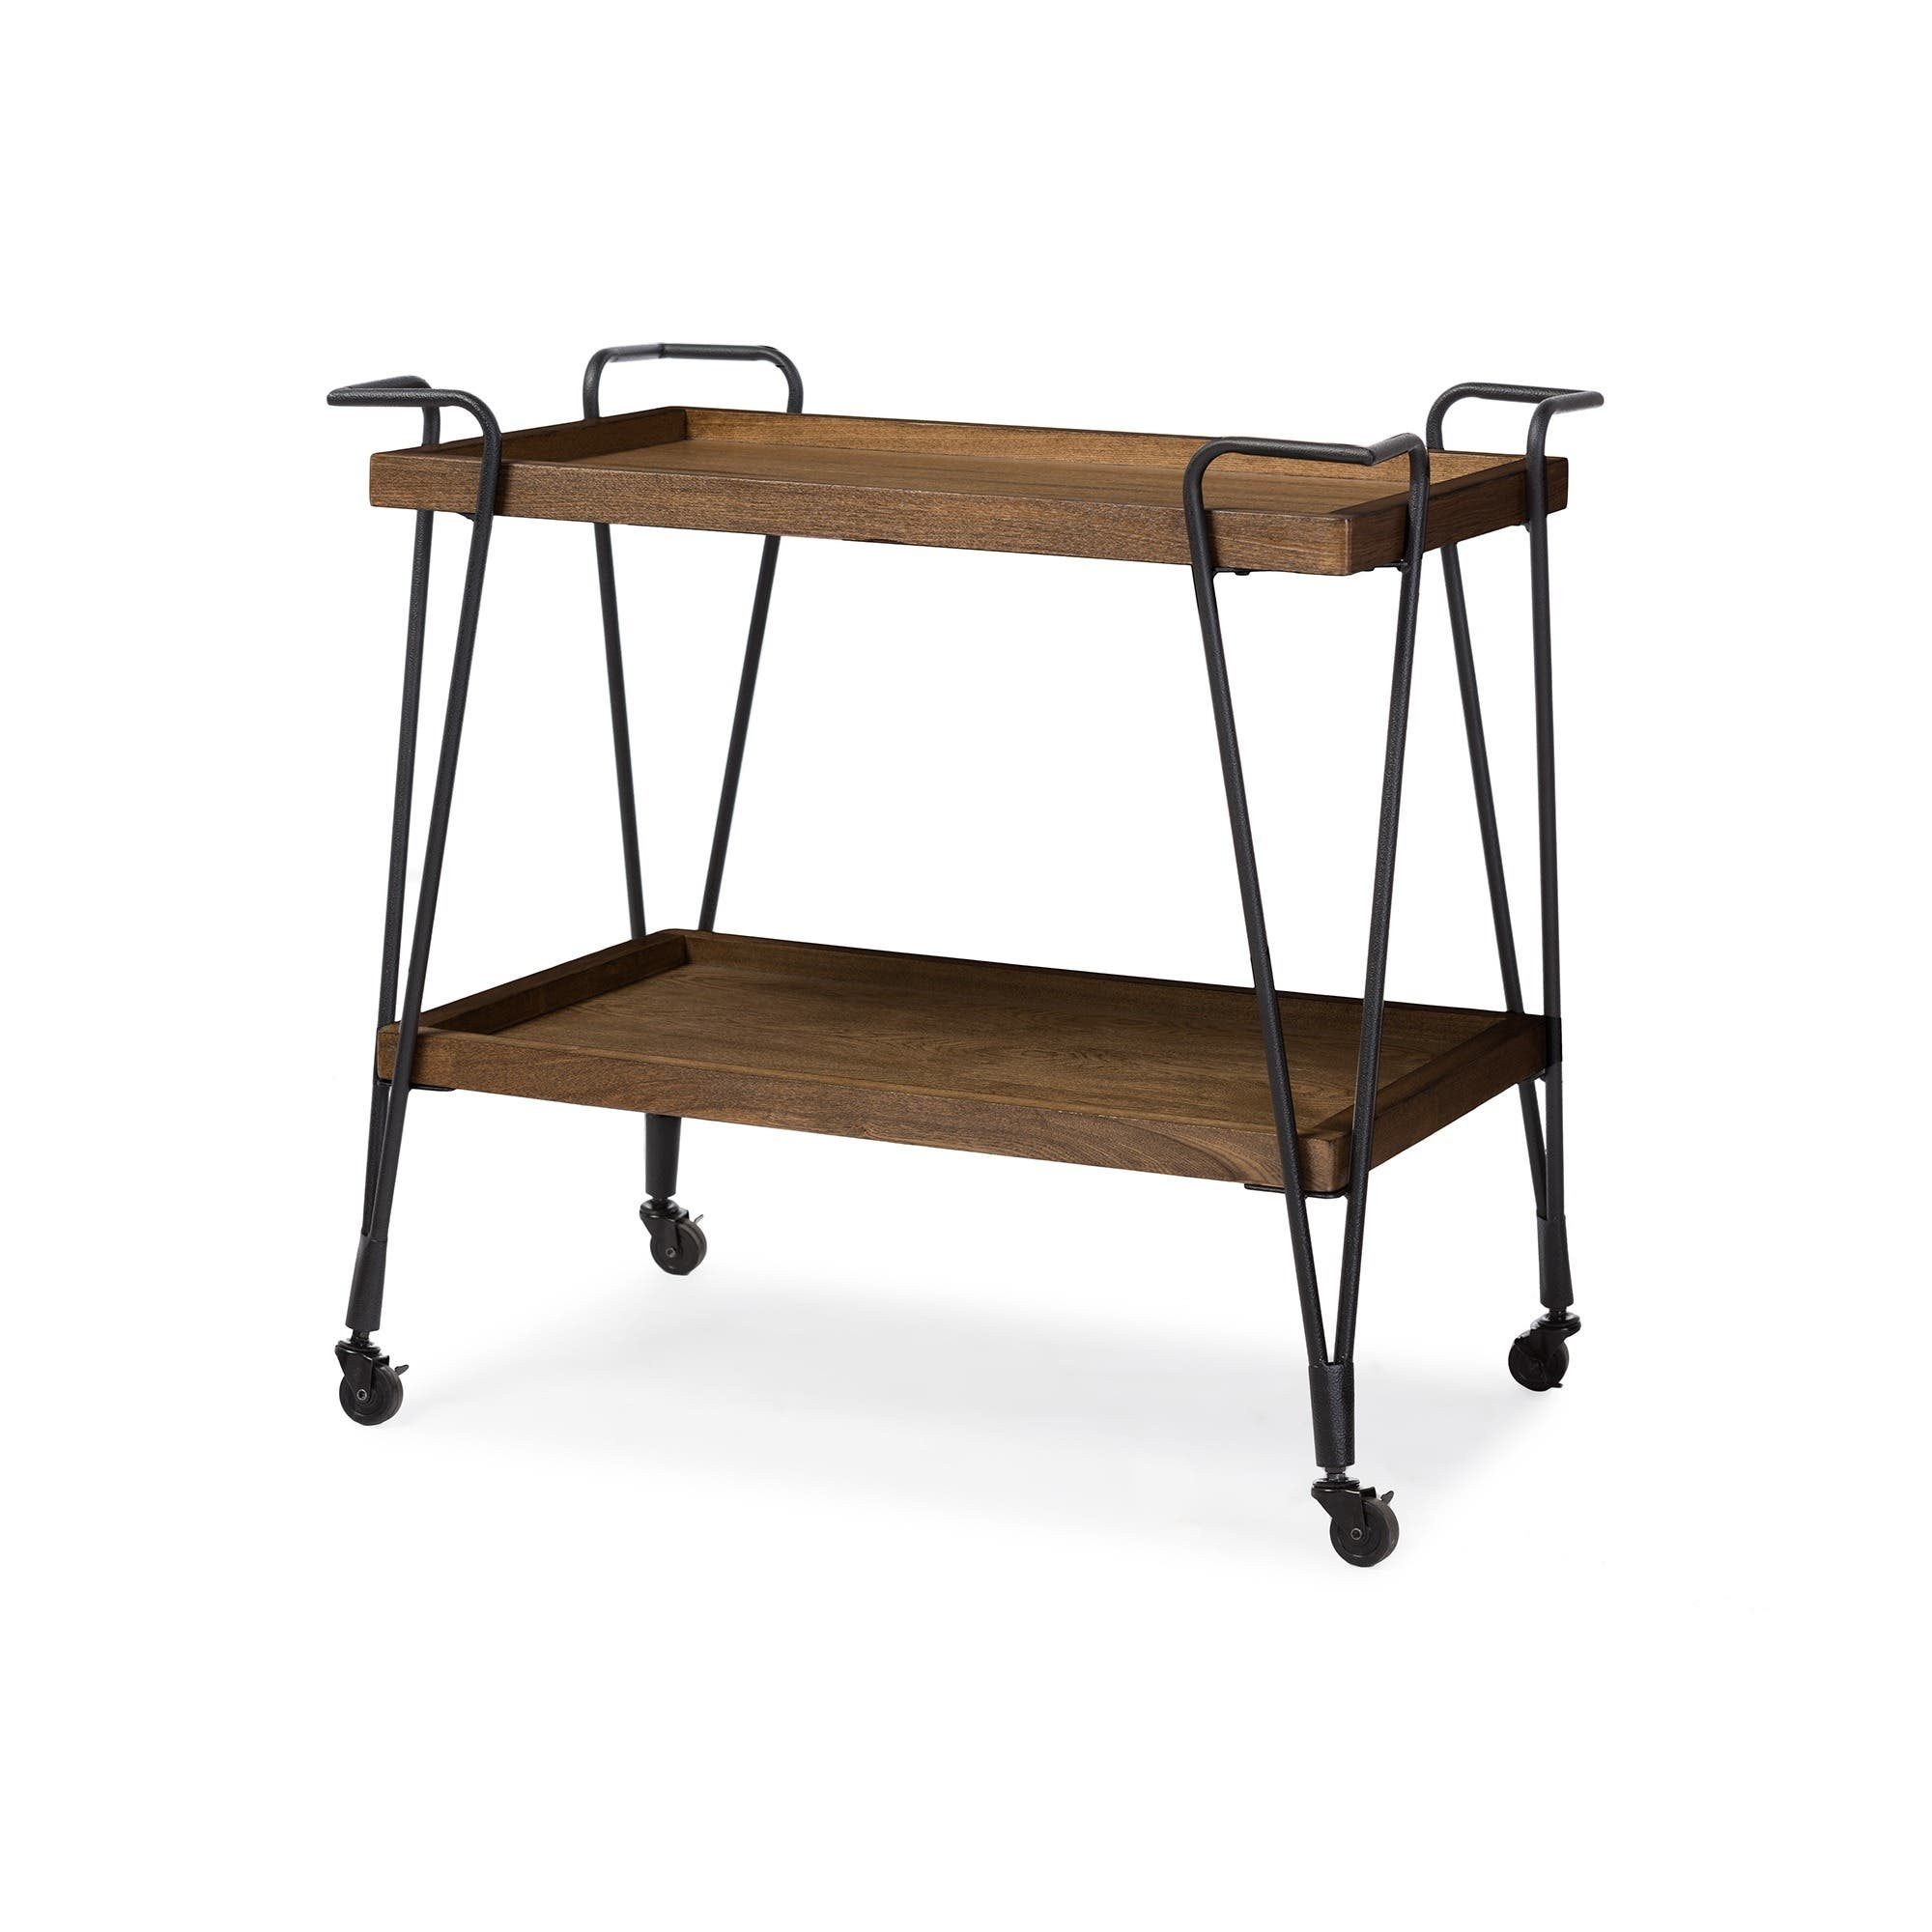 Baxton Studio Brown Industrial Kitchen Cart At Lowes Com: Home Bars For Less